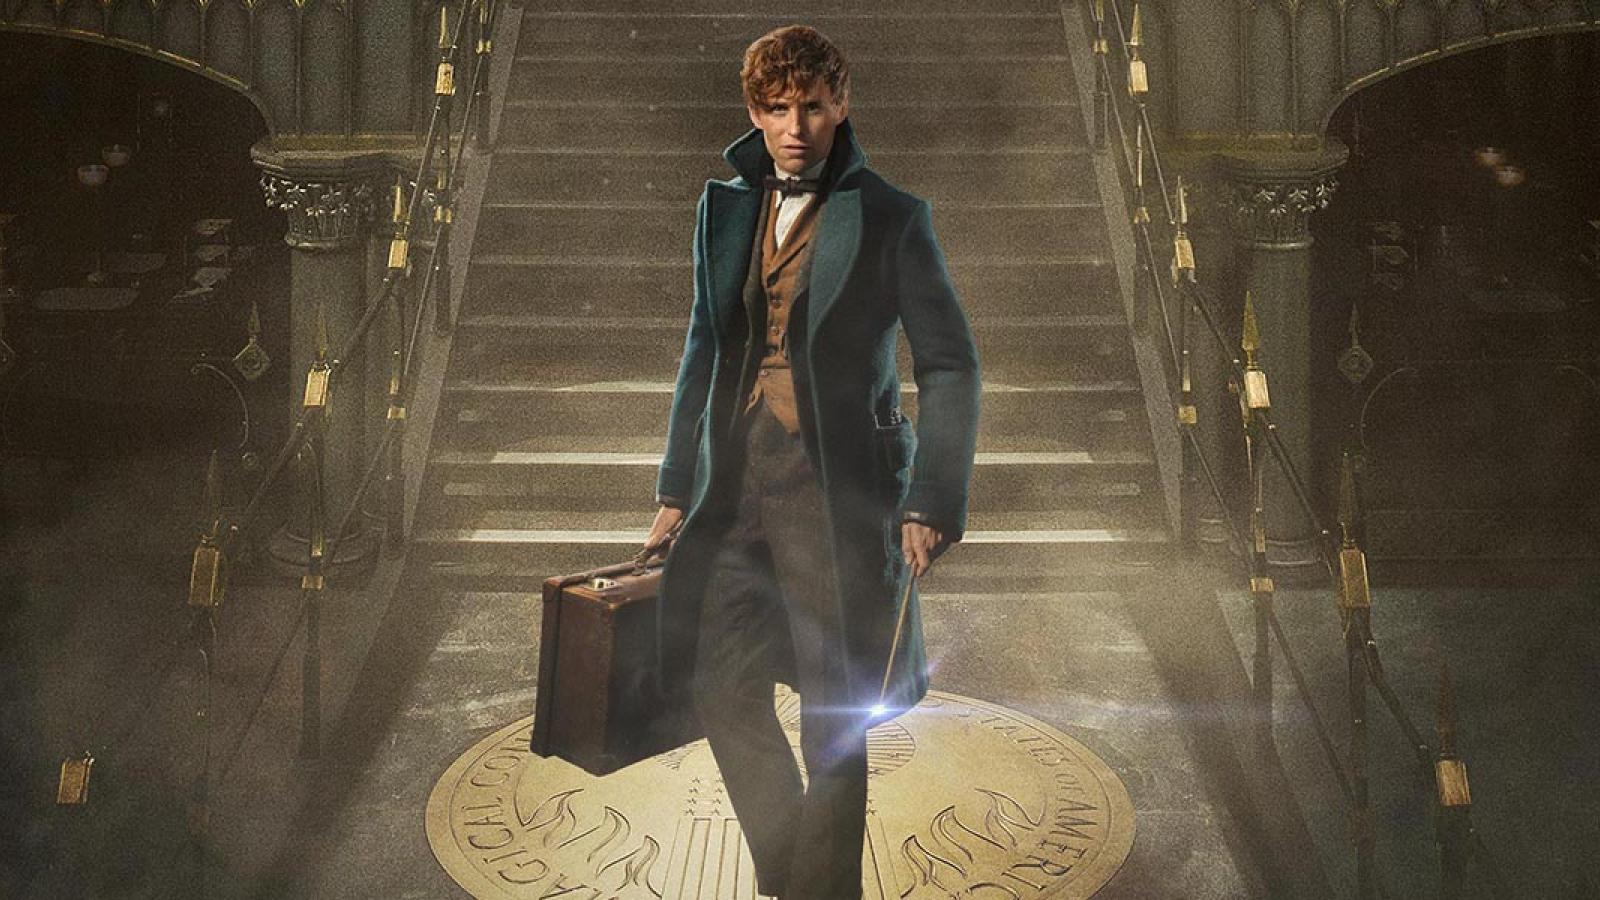 Fantastic Beasts and Where to Find Them Promotional Image